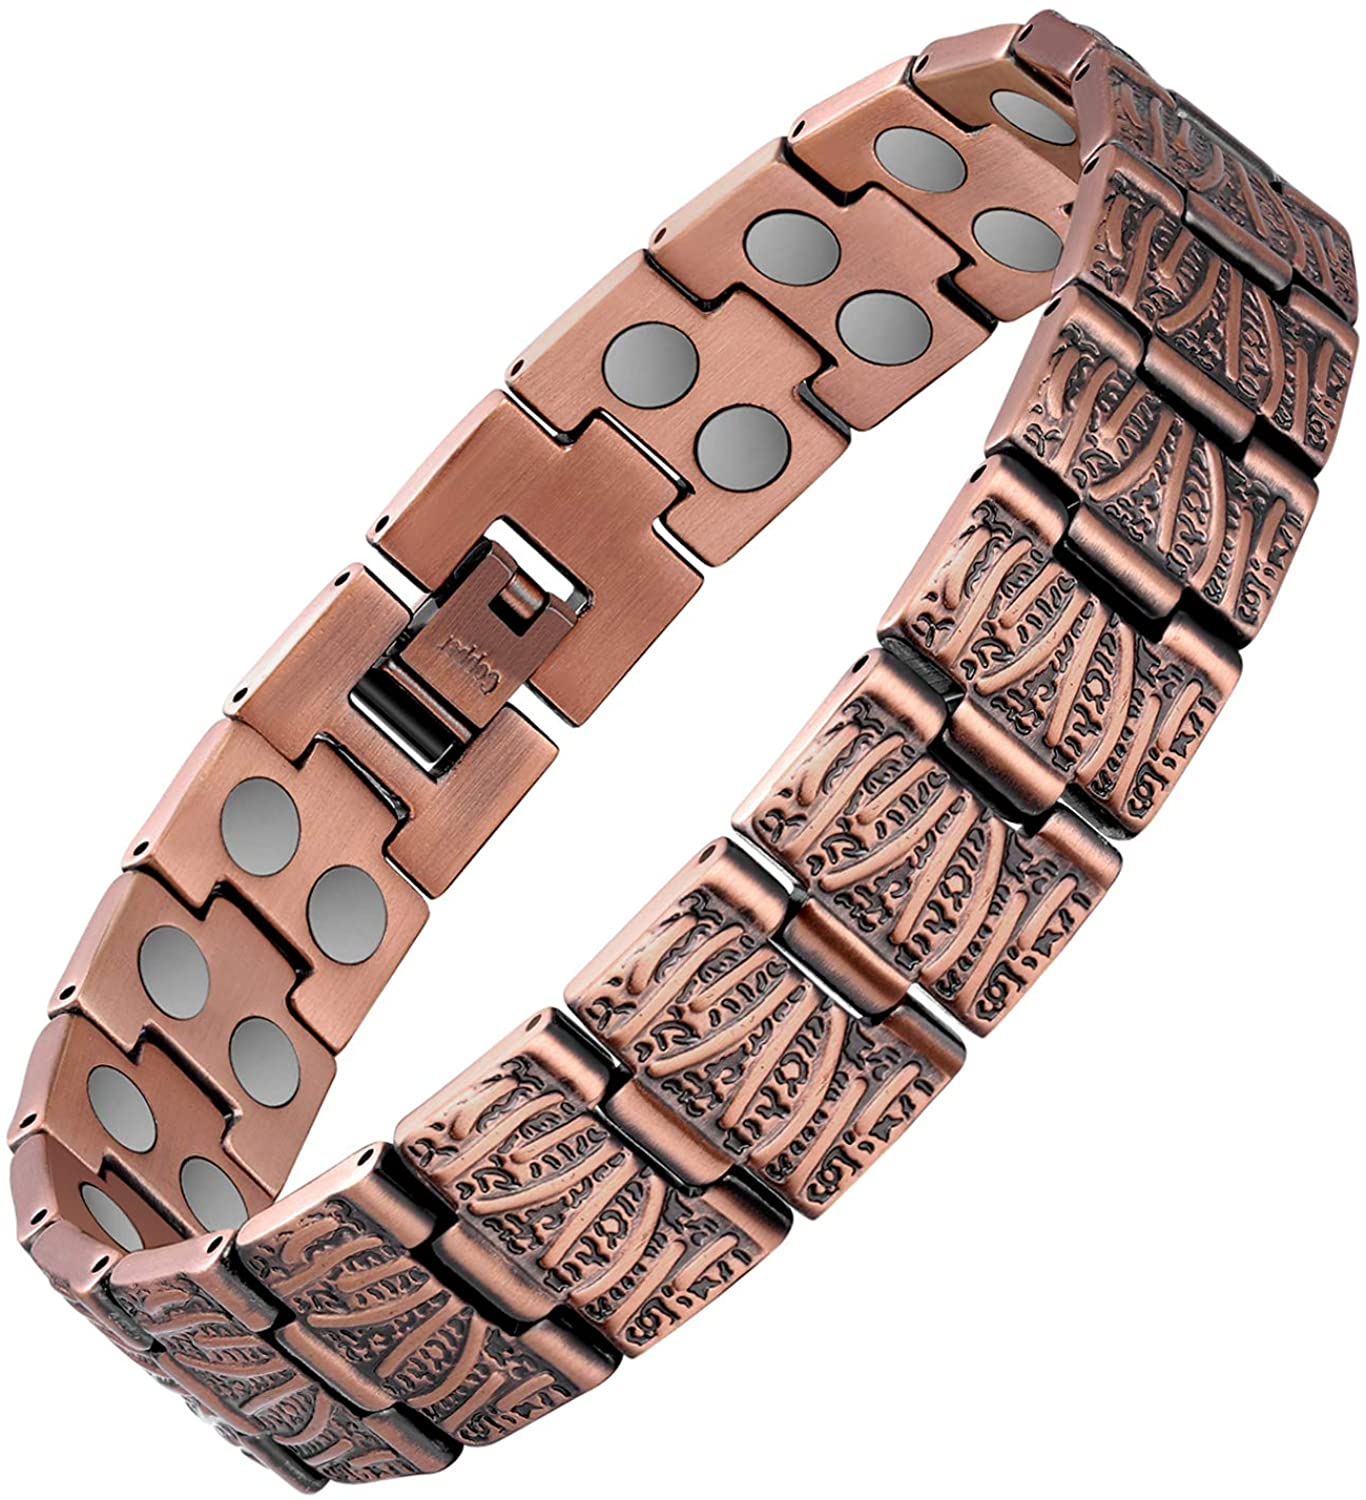 Jecanori Copper Magnetic Bracelet for Men Pain Relief for Arthritis and Carpal Tunnel Syndrome Double Raw 3500 Gauss Magnets 99.9% Copper Therapy Healing Bracelet